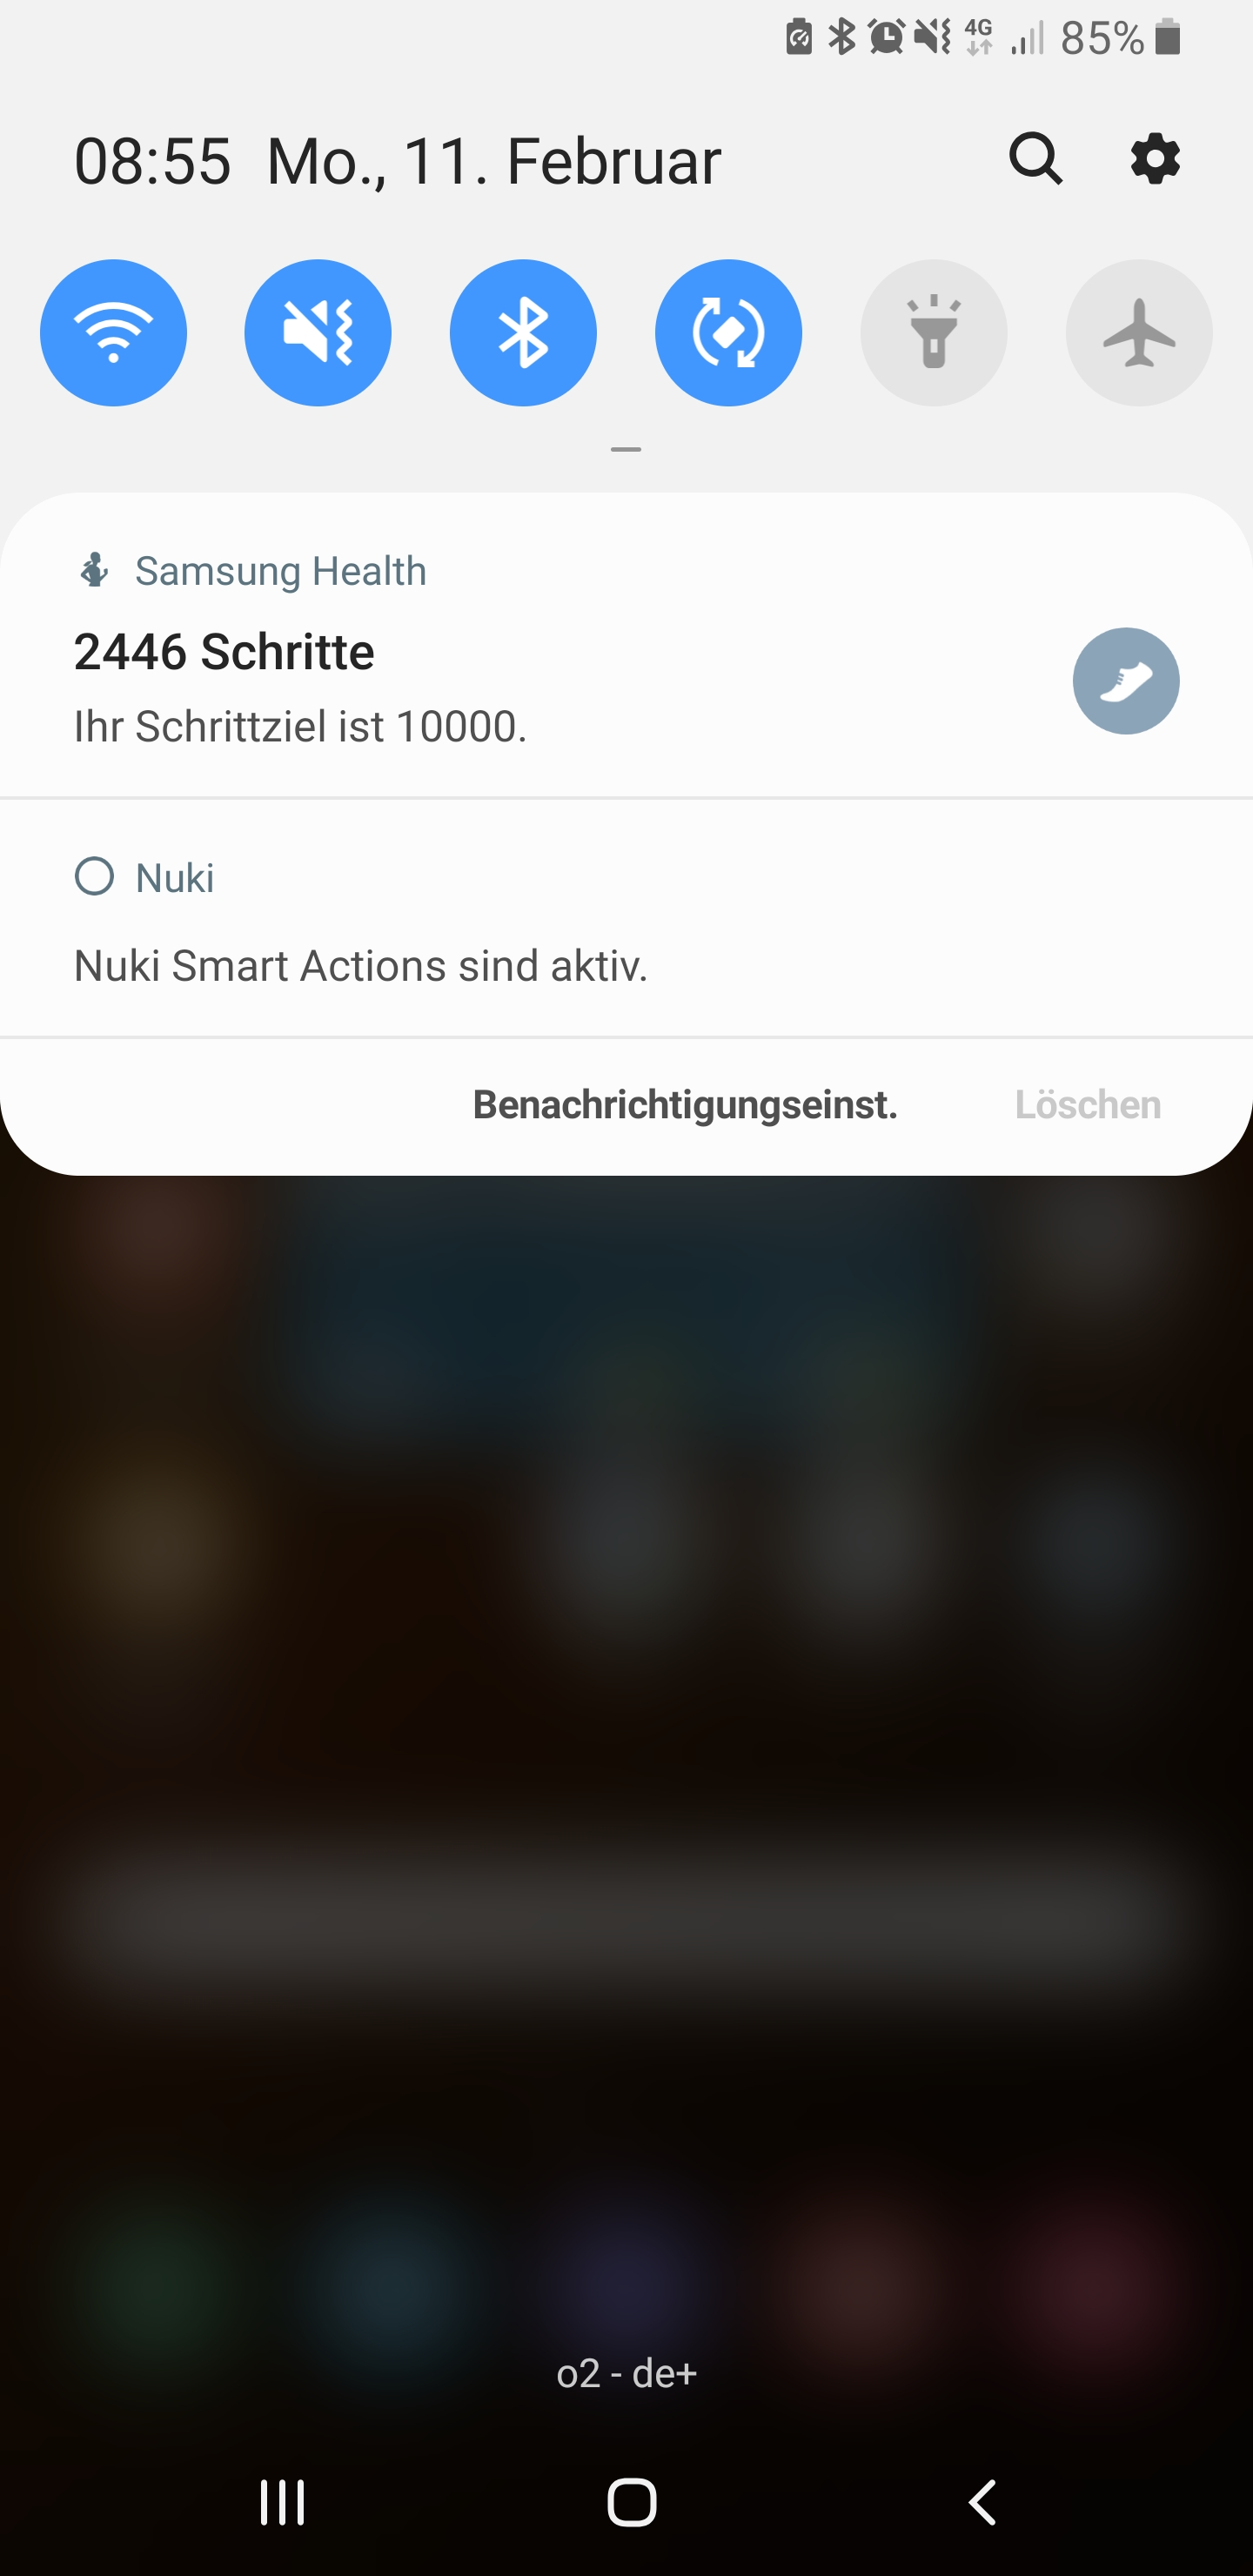 Auto unlock problem with Android Pie - Discussion - Nuki Developers